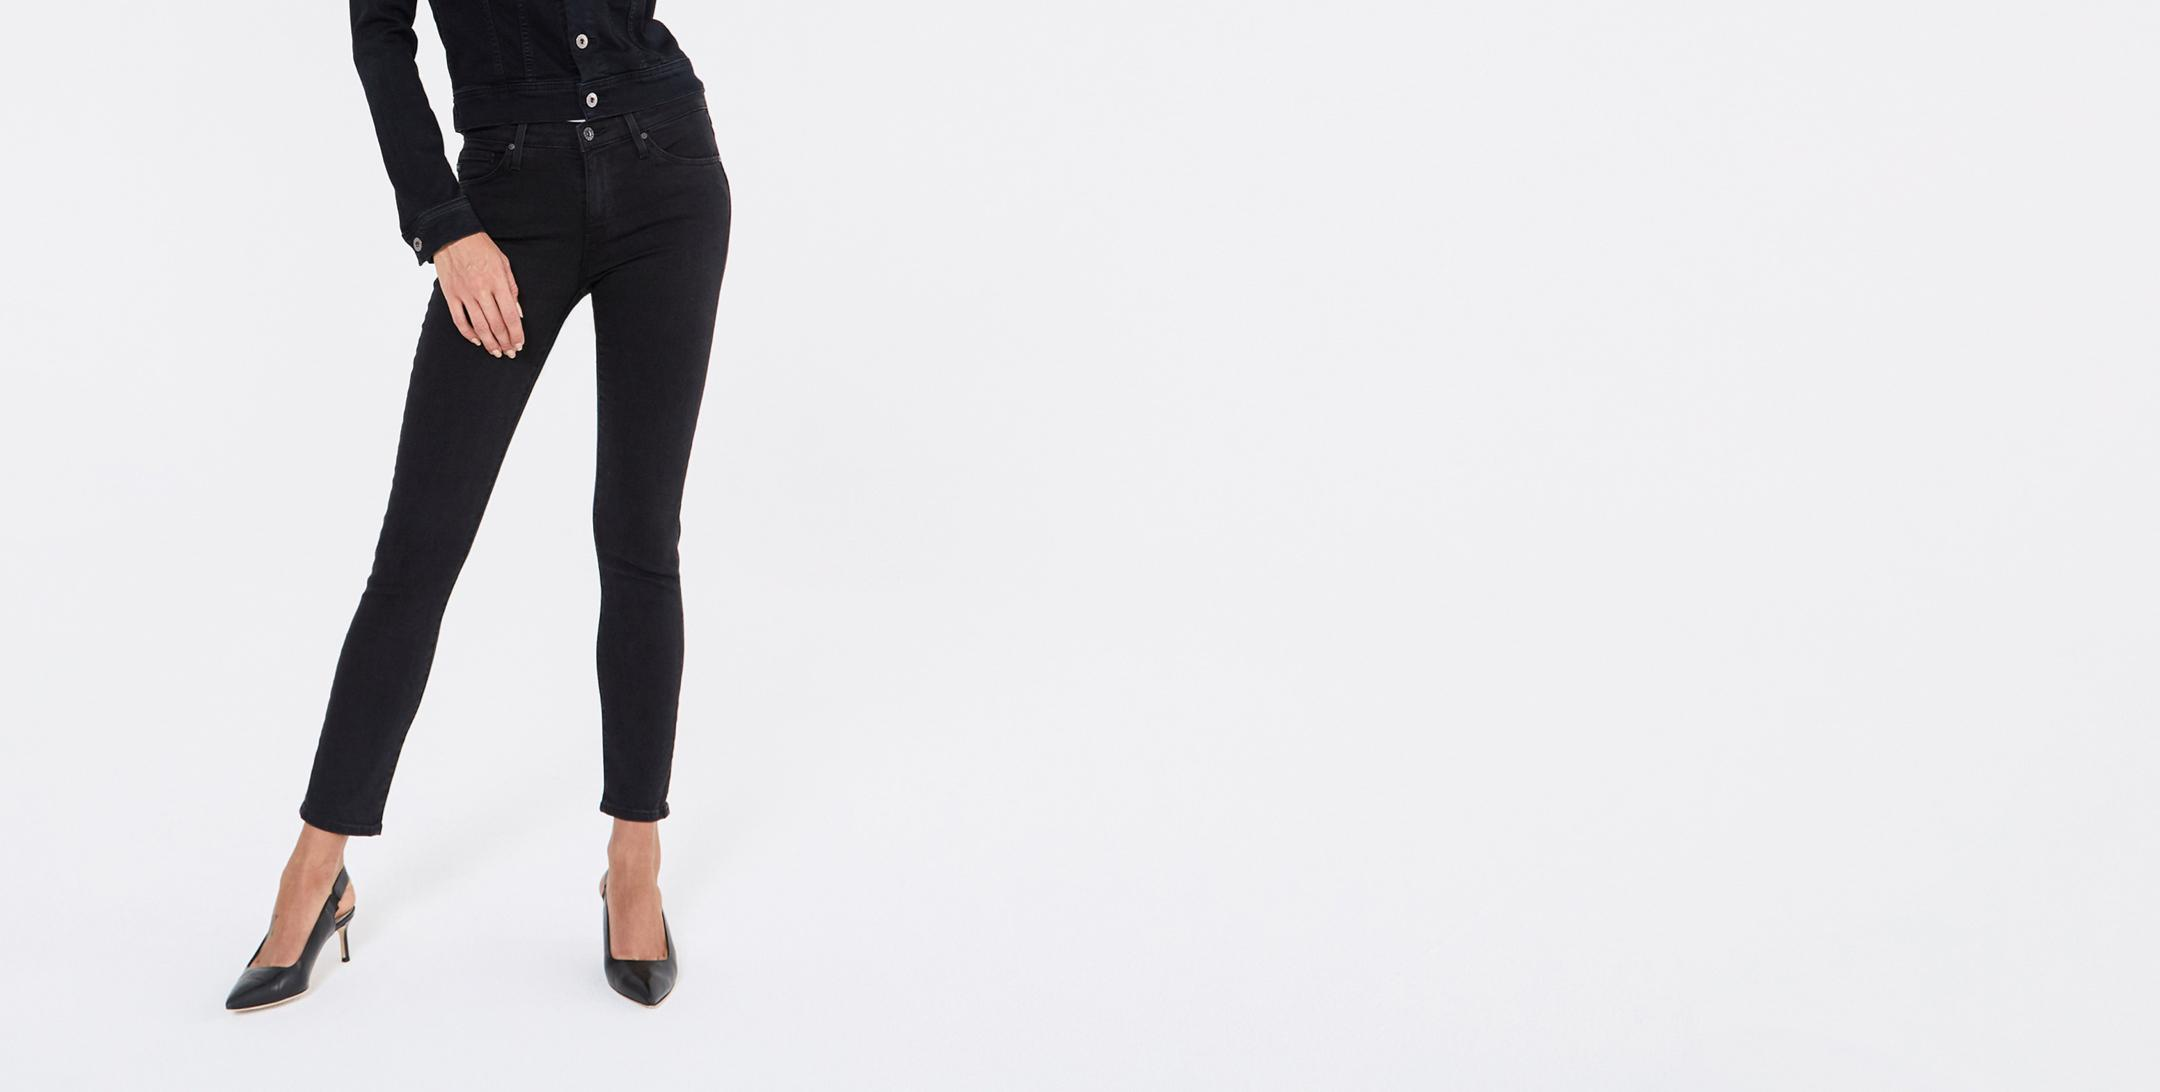 Fit Guide For Women Jean S On Ag Jeans Official Store